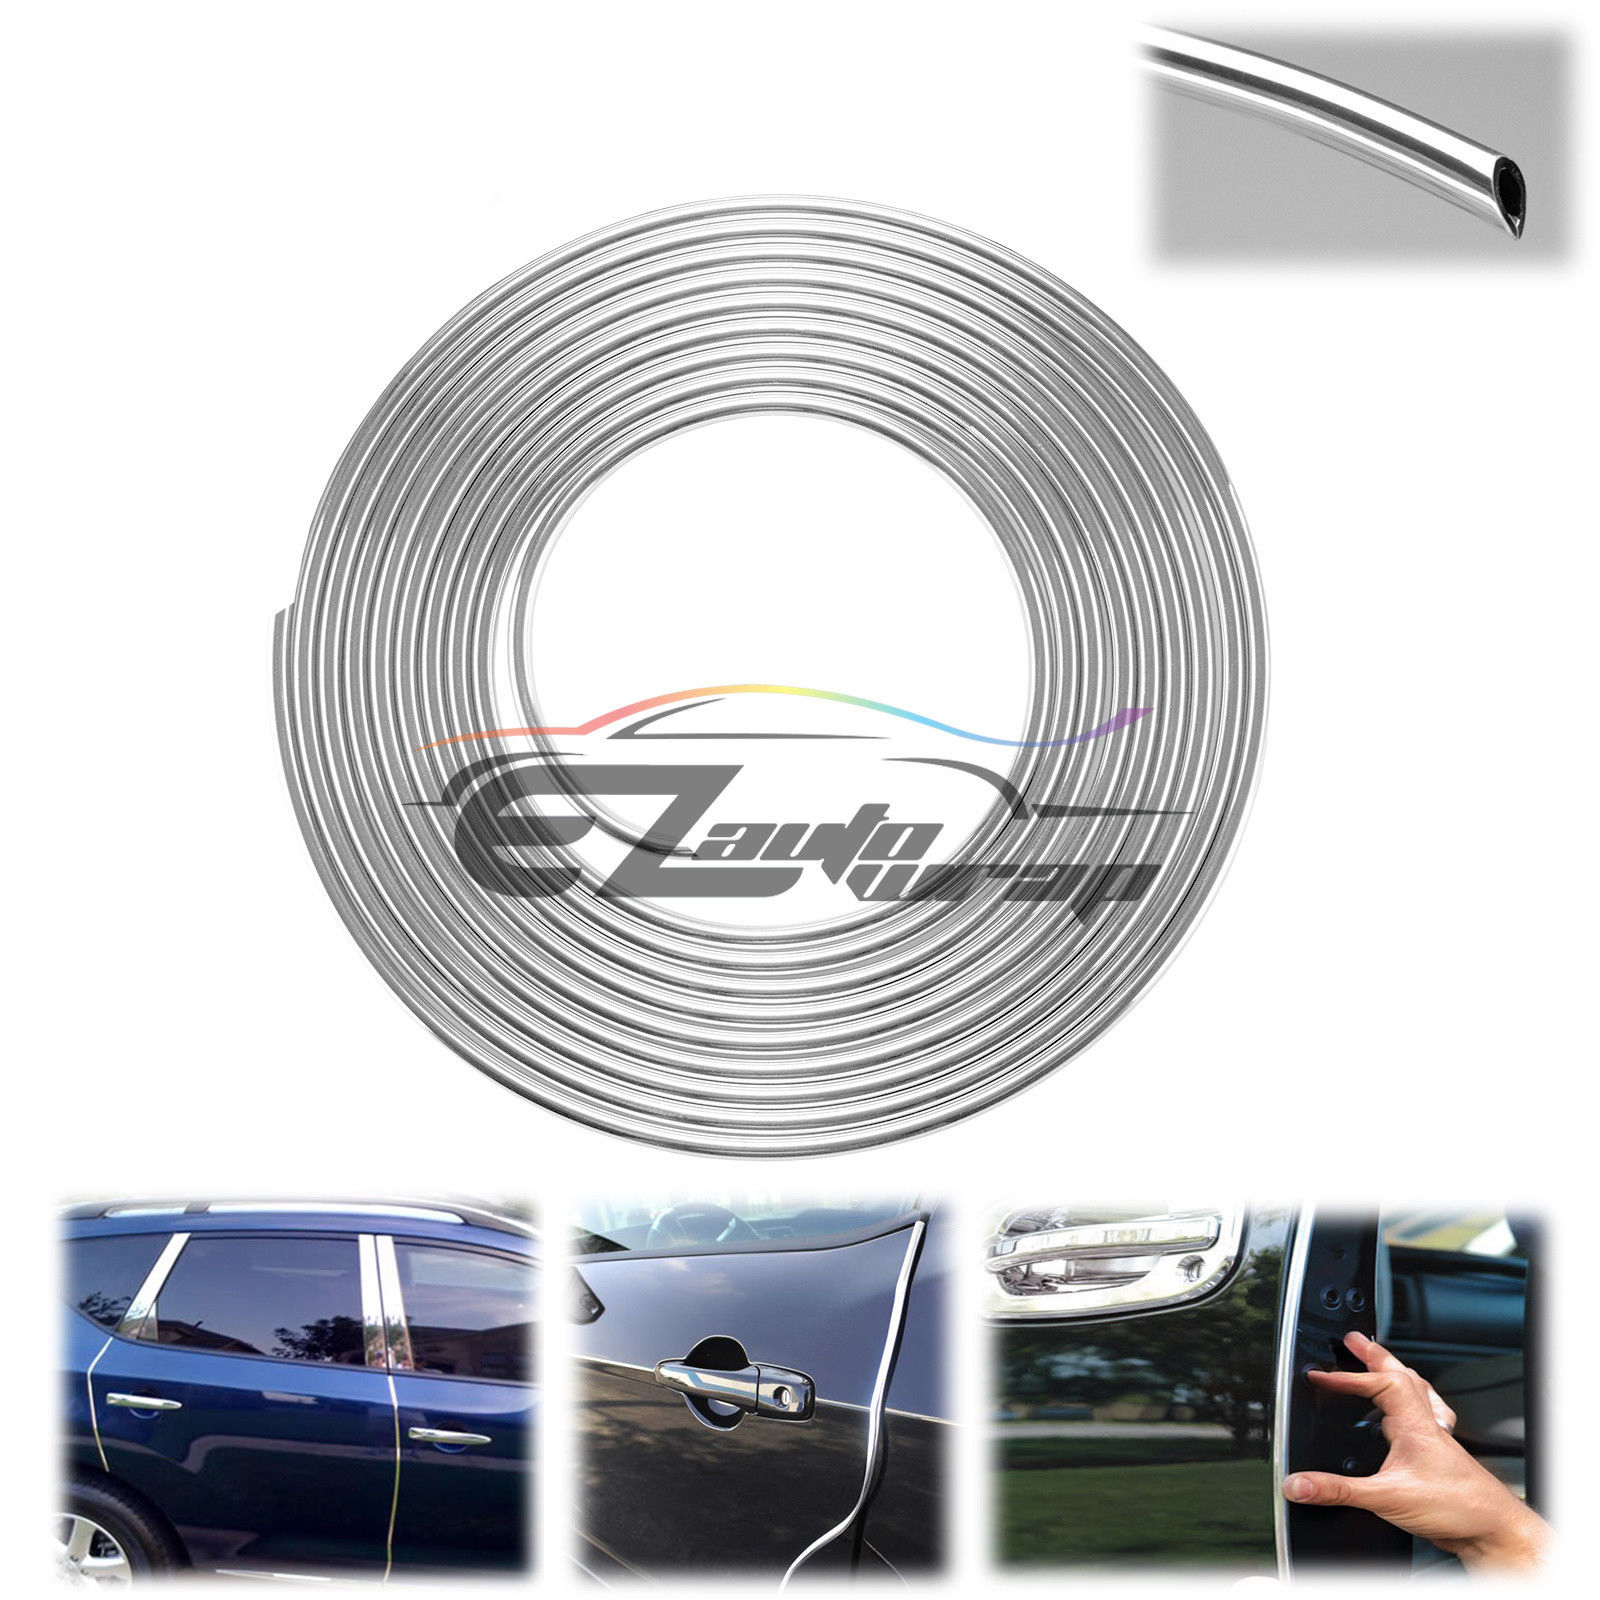 Black Car Door Edge Guard Molding Trim DIY Protectors Strip